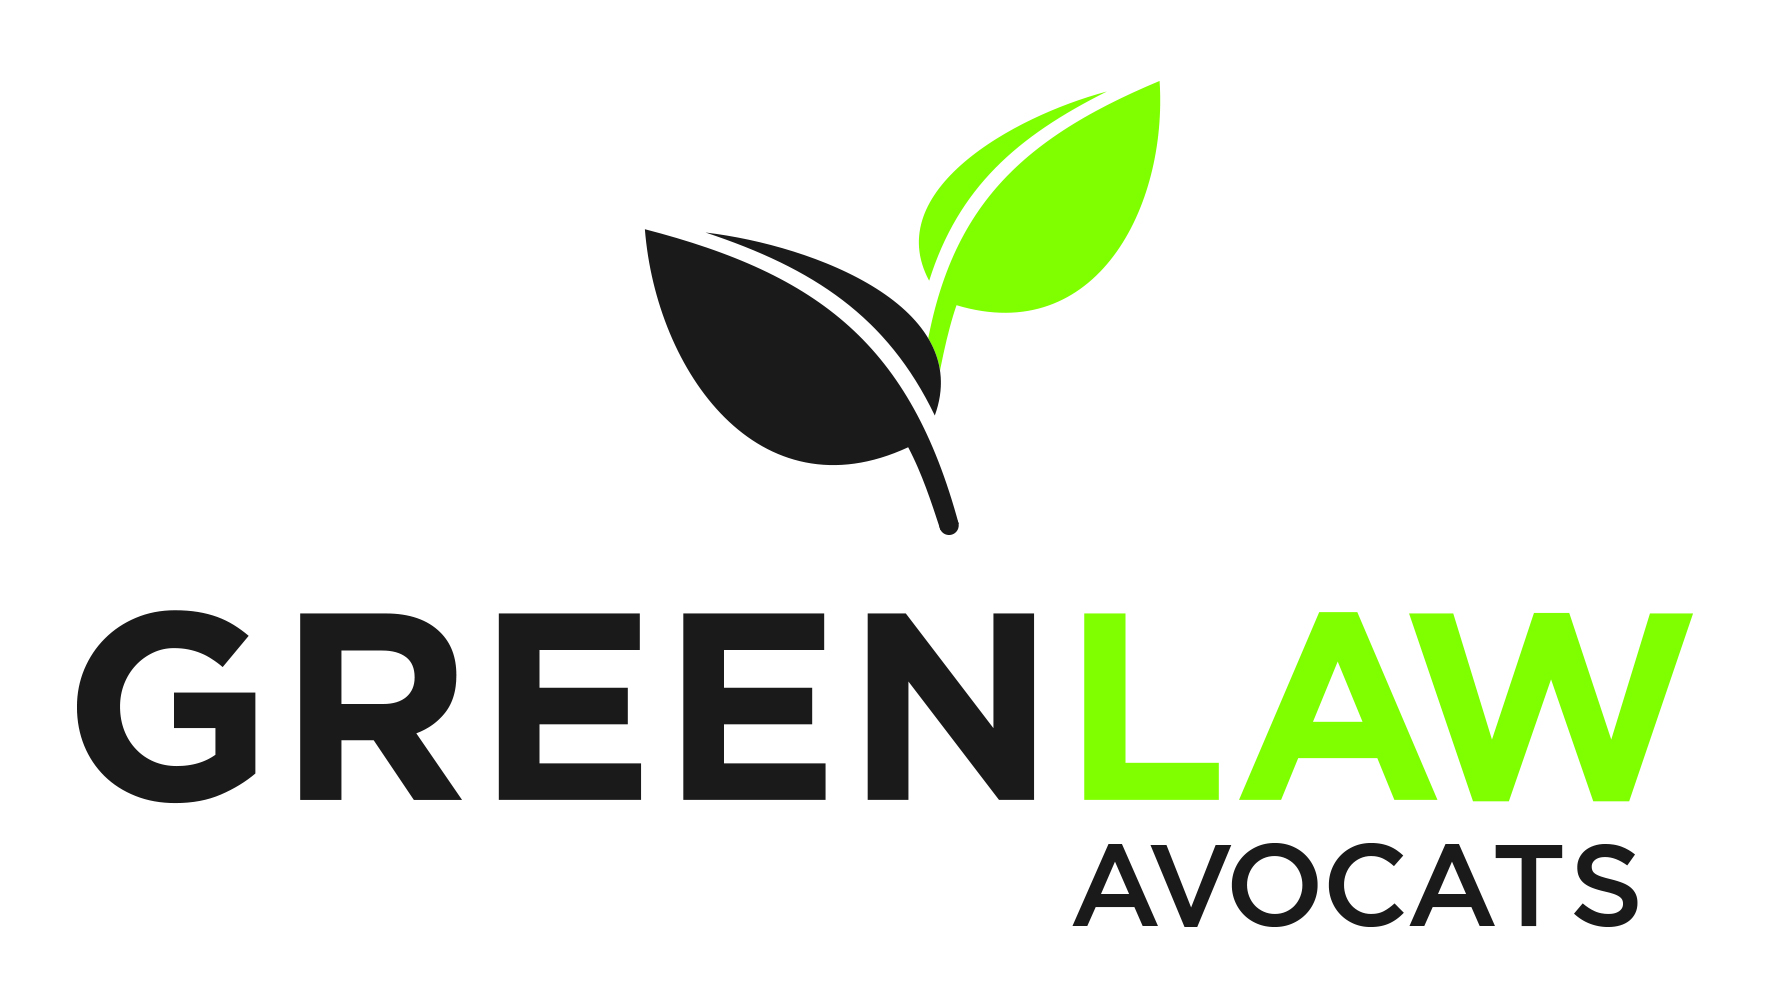 Green Law Avocats